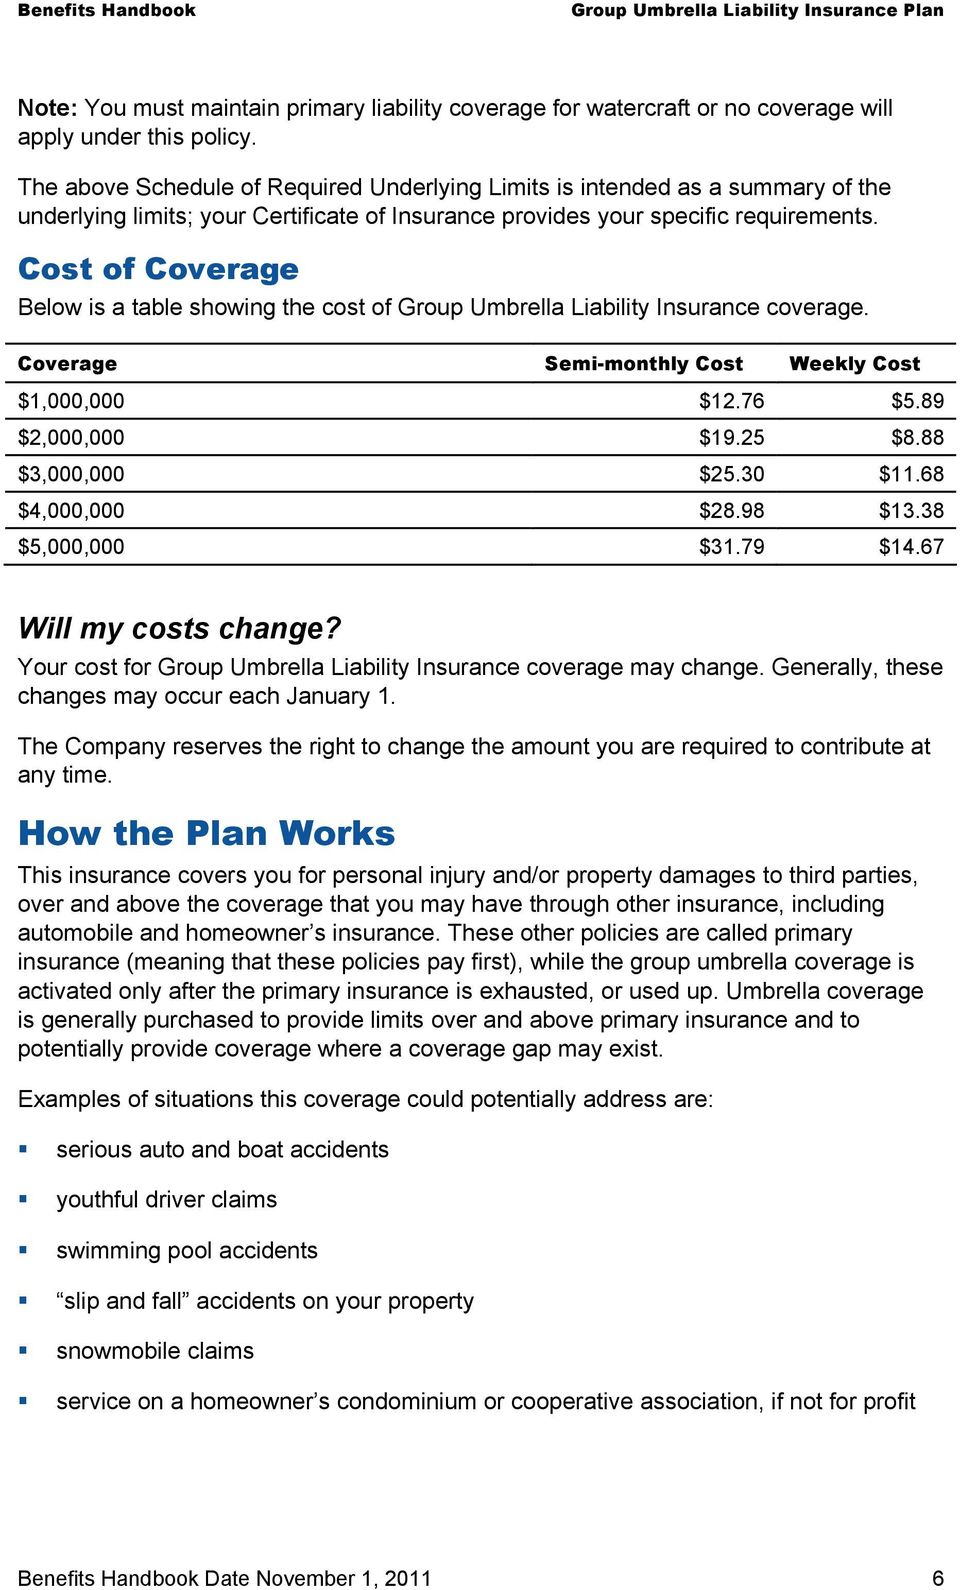 Cost of Coverage Below is a table showing the cost of Group Umbrella Liability Insurance coverage. Coverage Semi-monthly Cost Weekly Cost $1,000,000 $12.76 $5.89 $2,000,000 $19.25 $8.